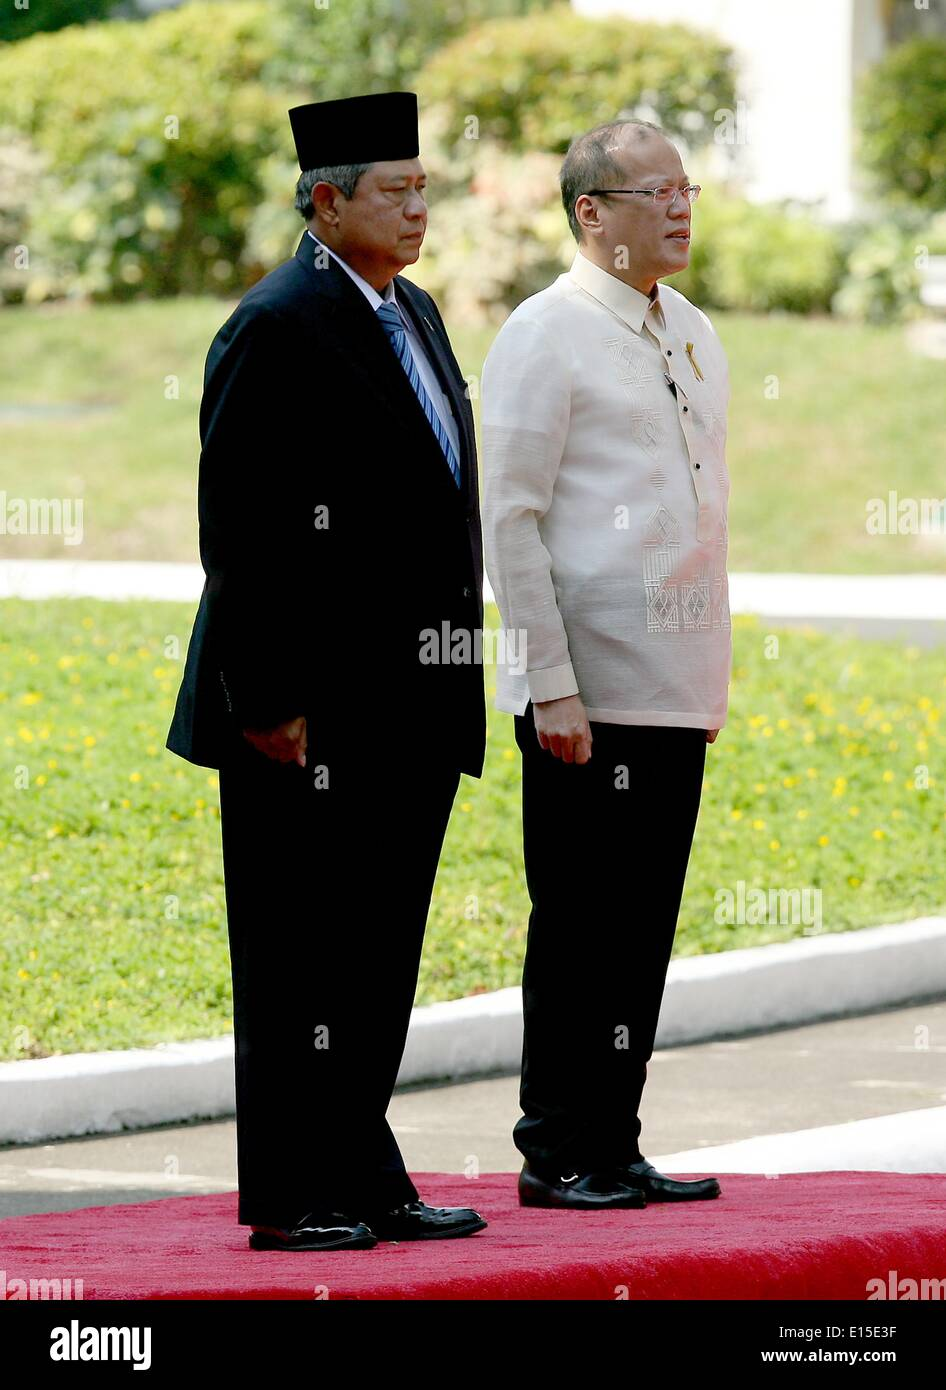 Manila, Philippines. 23rd May, 2014. Philippine President Benigno Aquino III (R) and visiting Indonesian President Susilo Bambang Yudhoyono attend the welcoming ceremony at the presidential palace in Manila, the Philippines, May 23, 2014. The Philippines and Indonesia signed on Friday an agreement on the delimitation of their overlapping exclusive economic zones (EEZ) in the Mindanao Sea and Celebes Sea. © Rouelle Umali/Xinhua/Alamy Live News - Stock Image